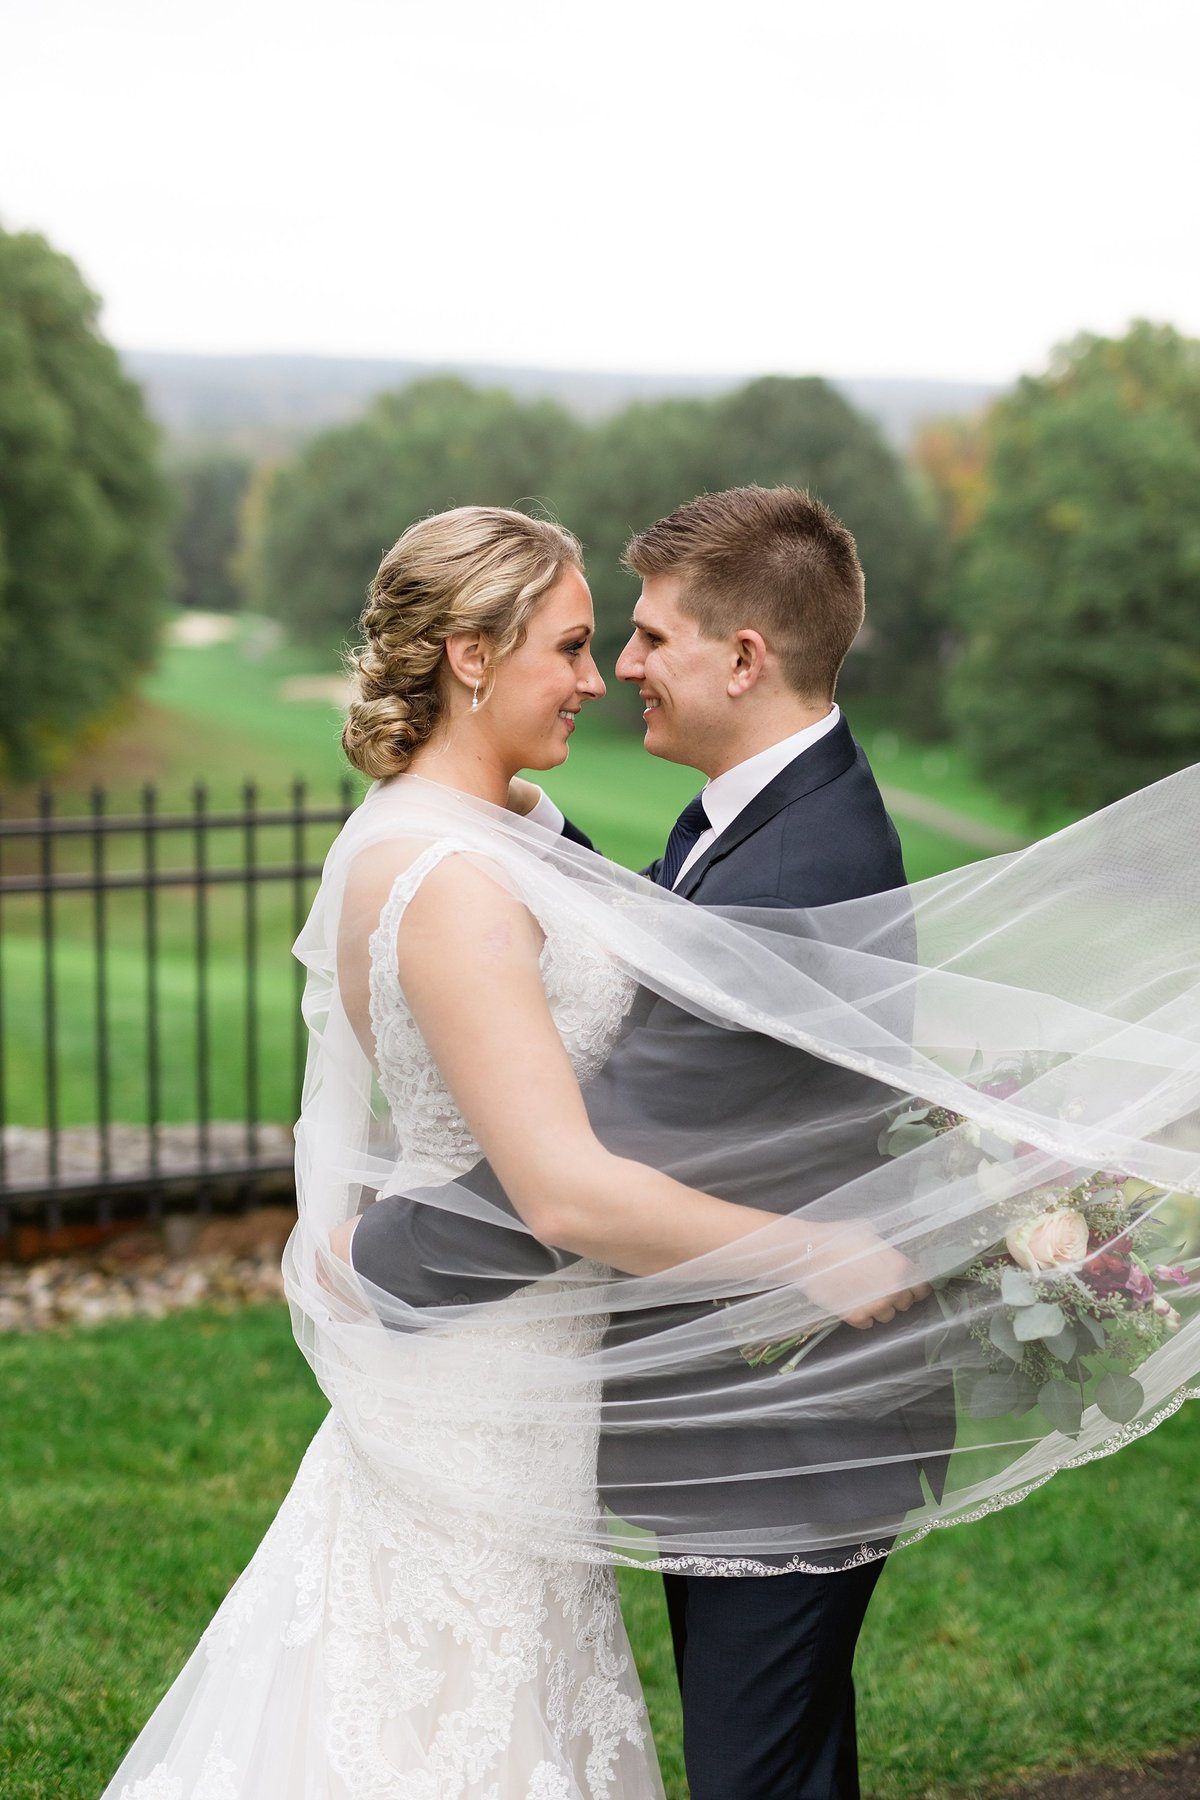 Jordan-Ben-Pine-Knob-Mansion-Clarkston-Michigan-Wedding-Breanne-Rochelle-Photography82